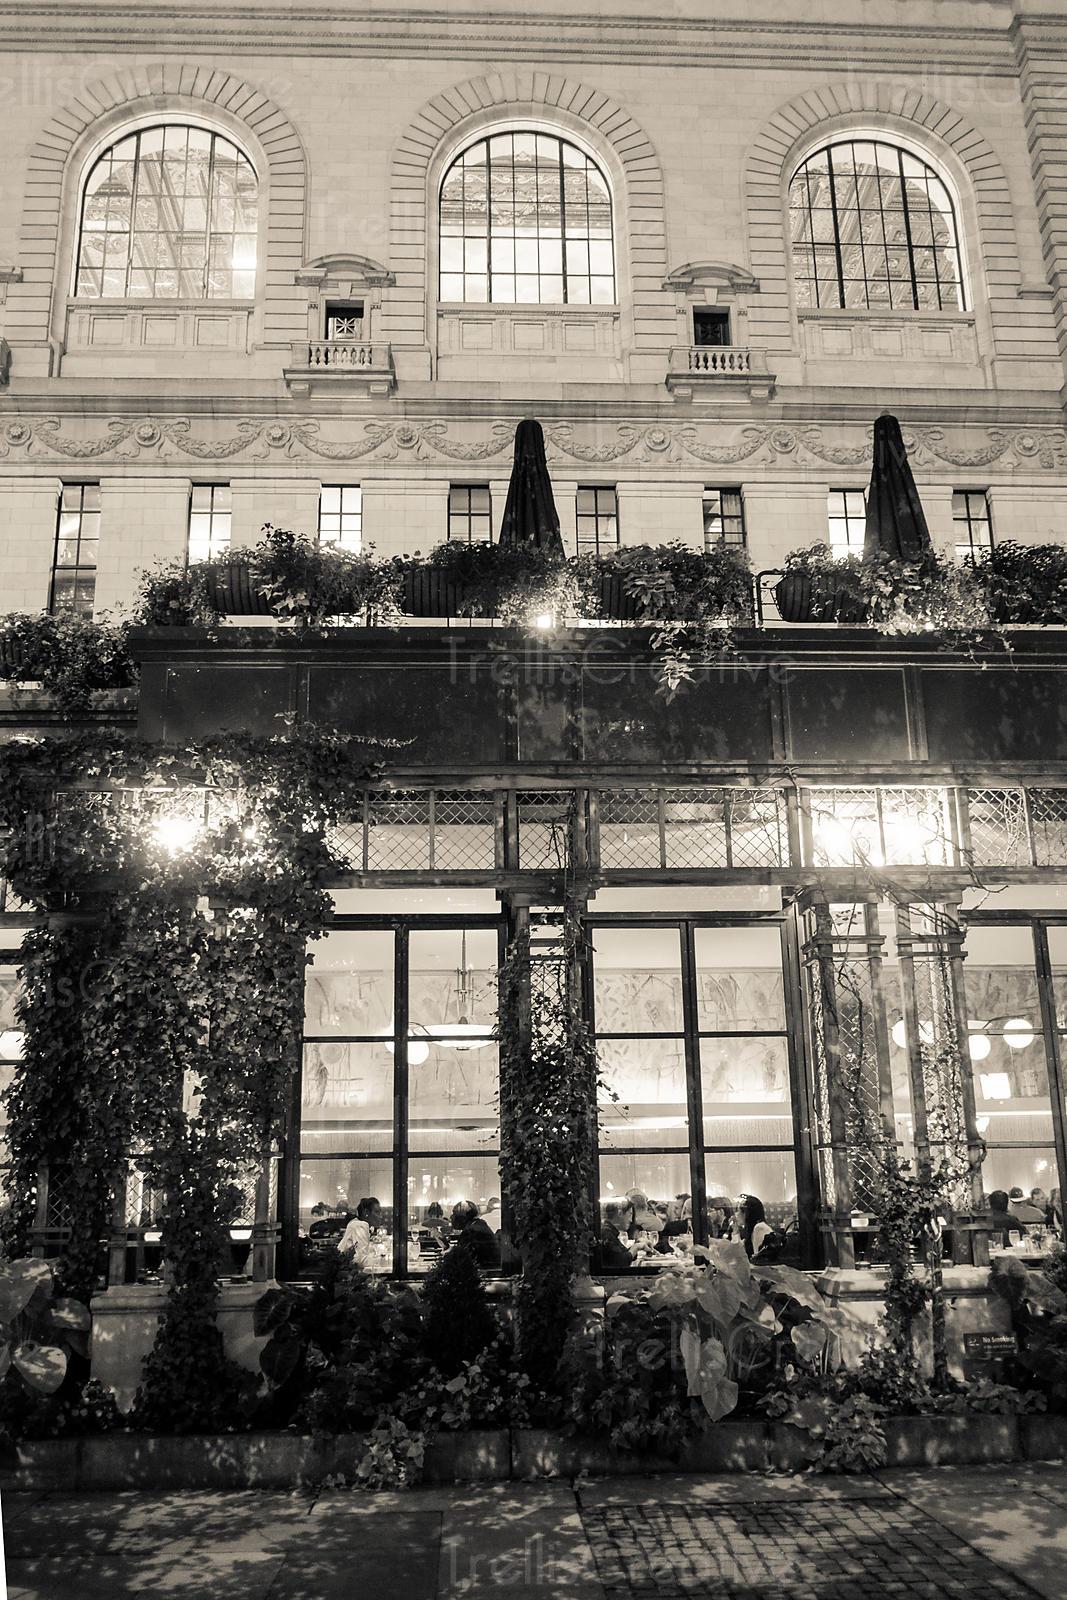 Exterior of hotel in black and white